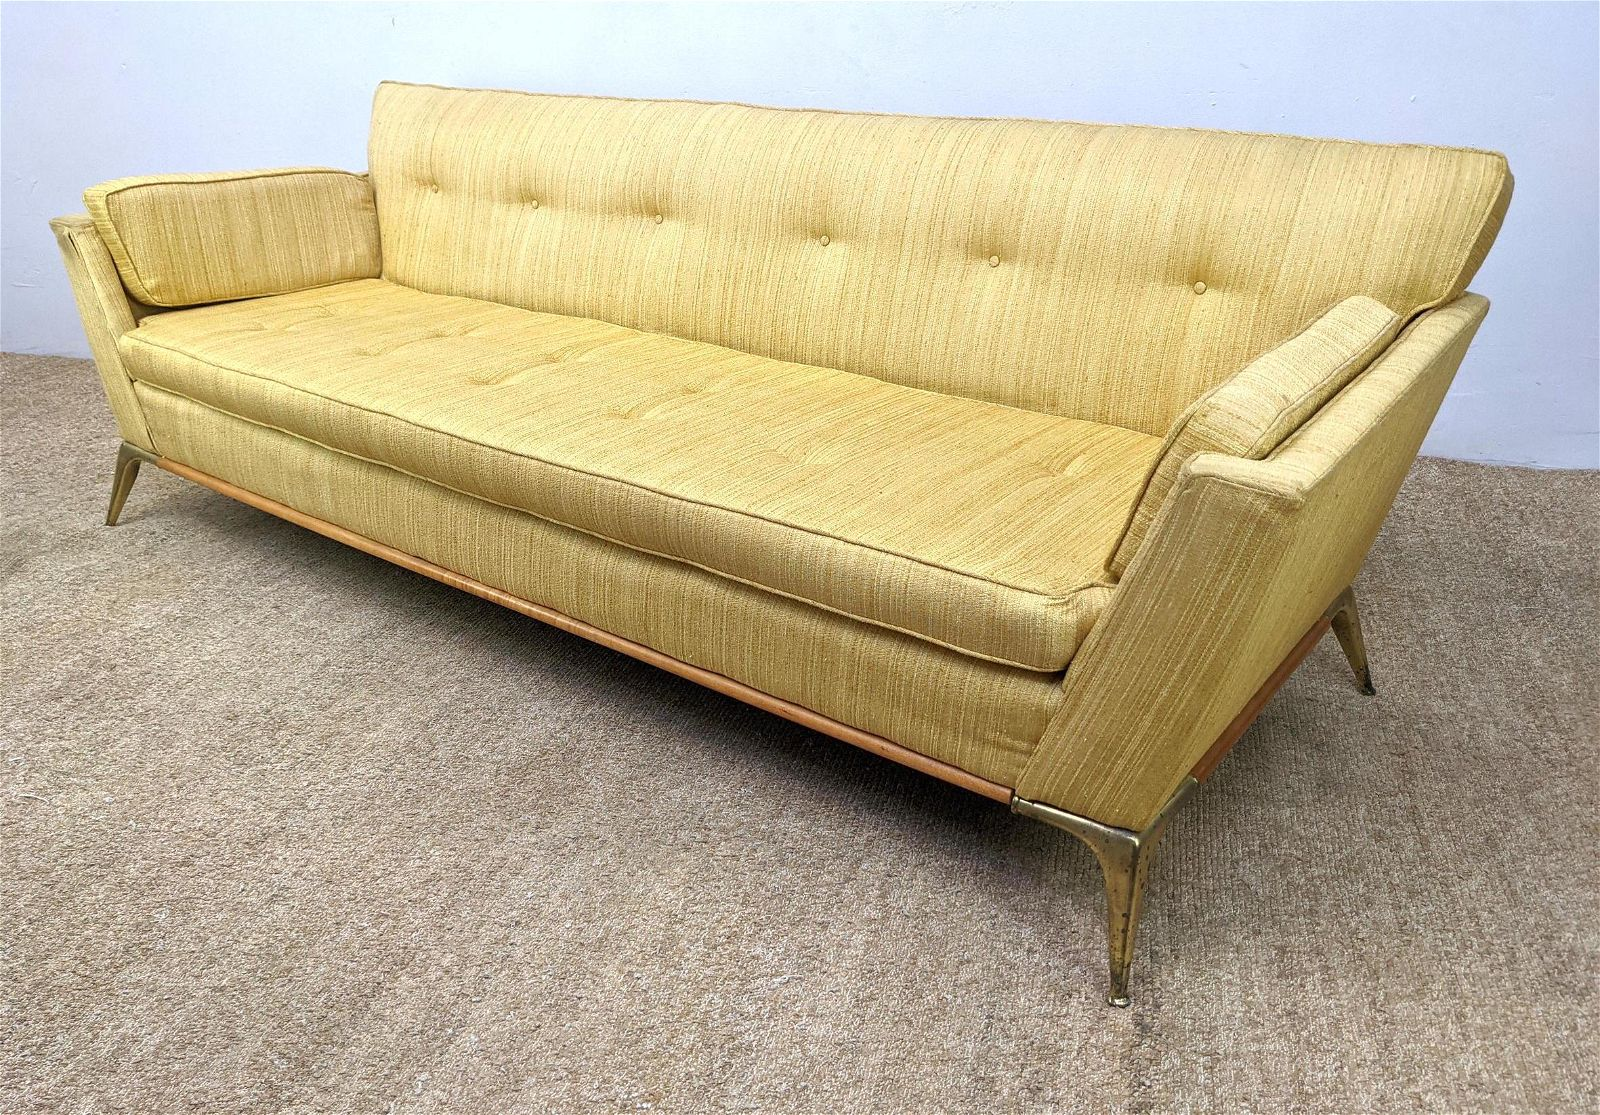 Mid Century Modern Sofa Couch with Flared Metal Legs.